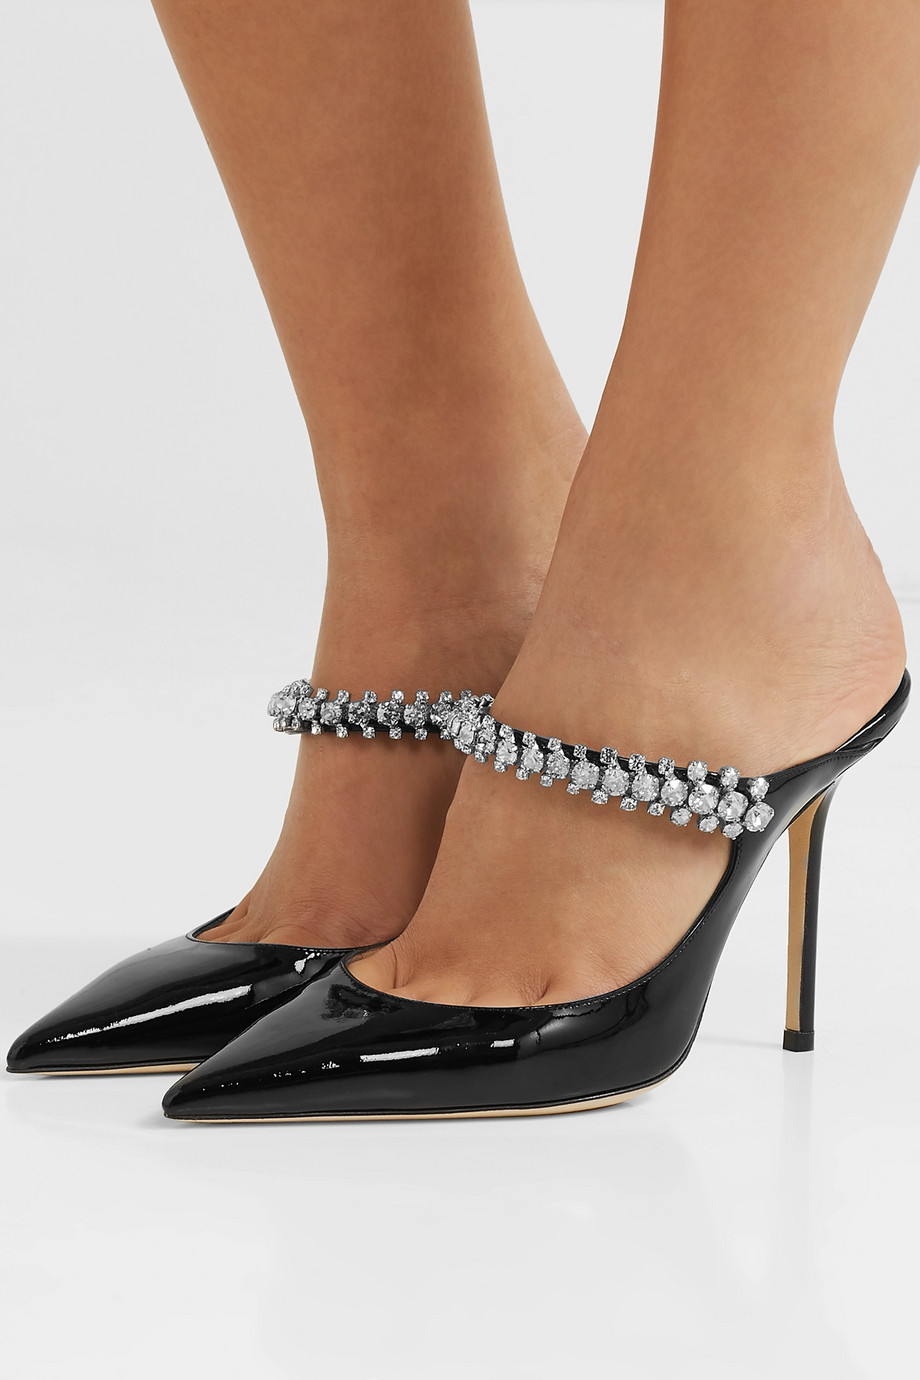 """Jimmy Choo """"Bing 100"""" Crystal-Embellished Patent Leather Mules"""